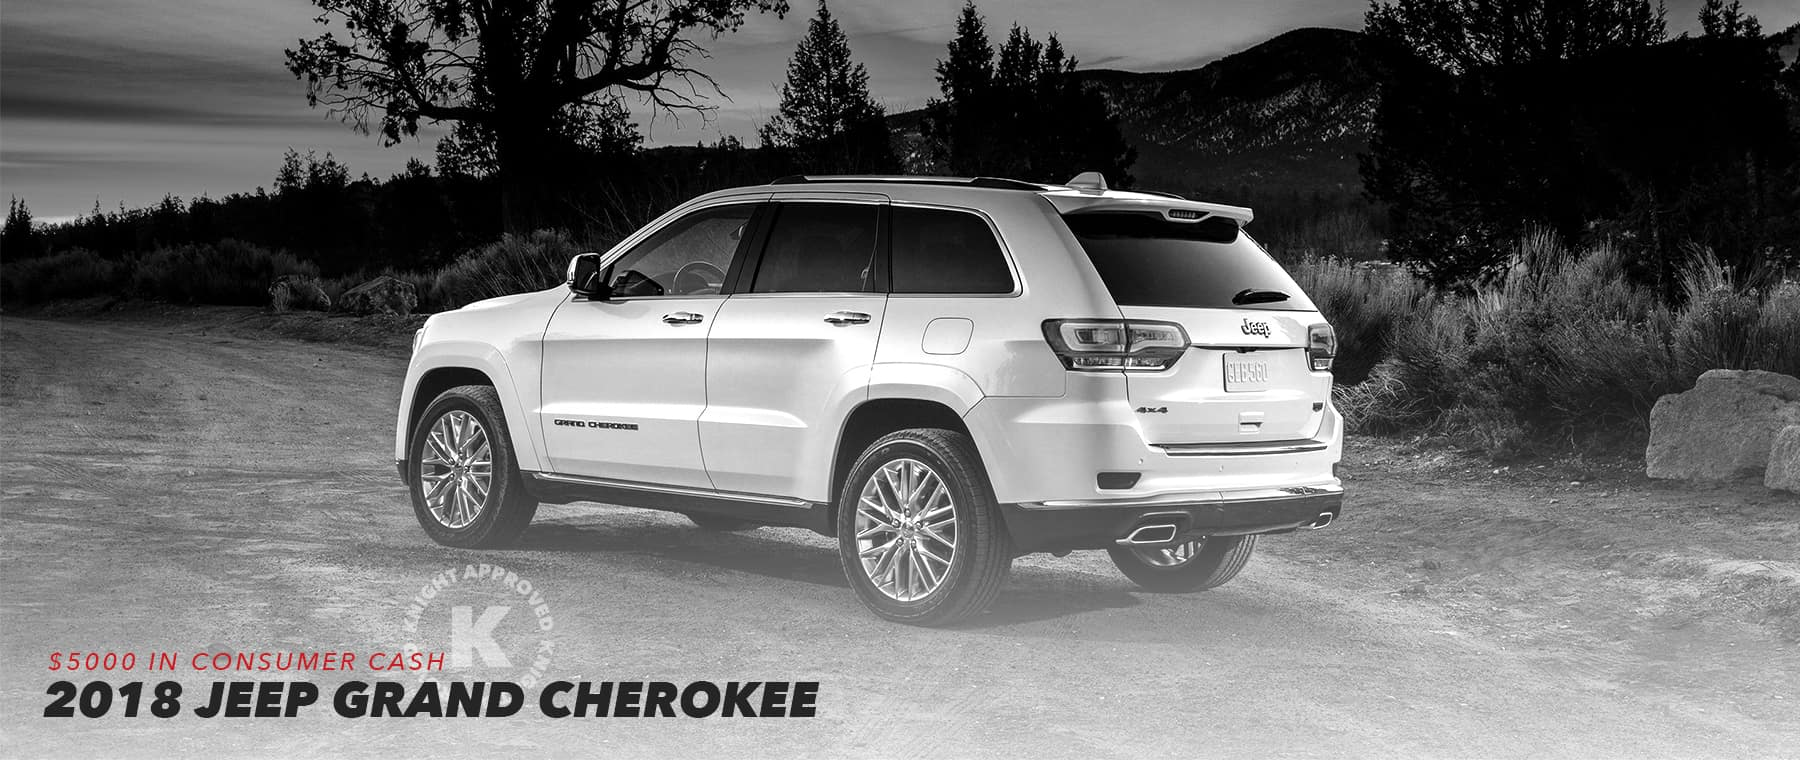 2018 Jeep Grand Cherokee Homepage Slider